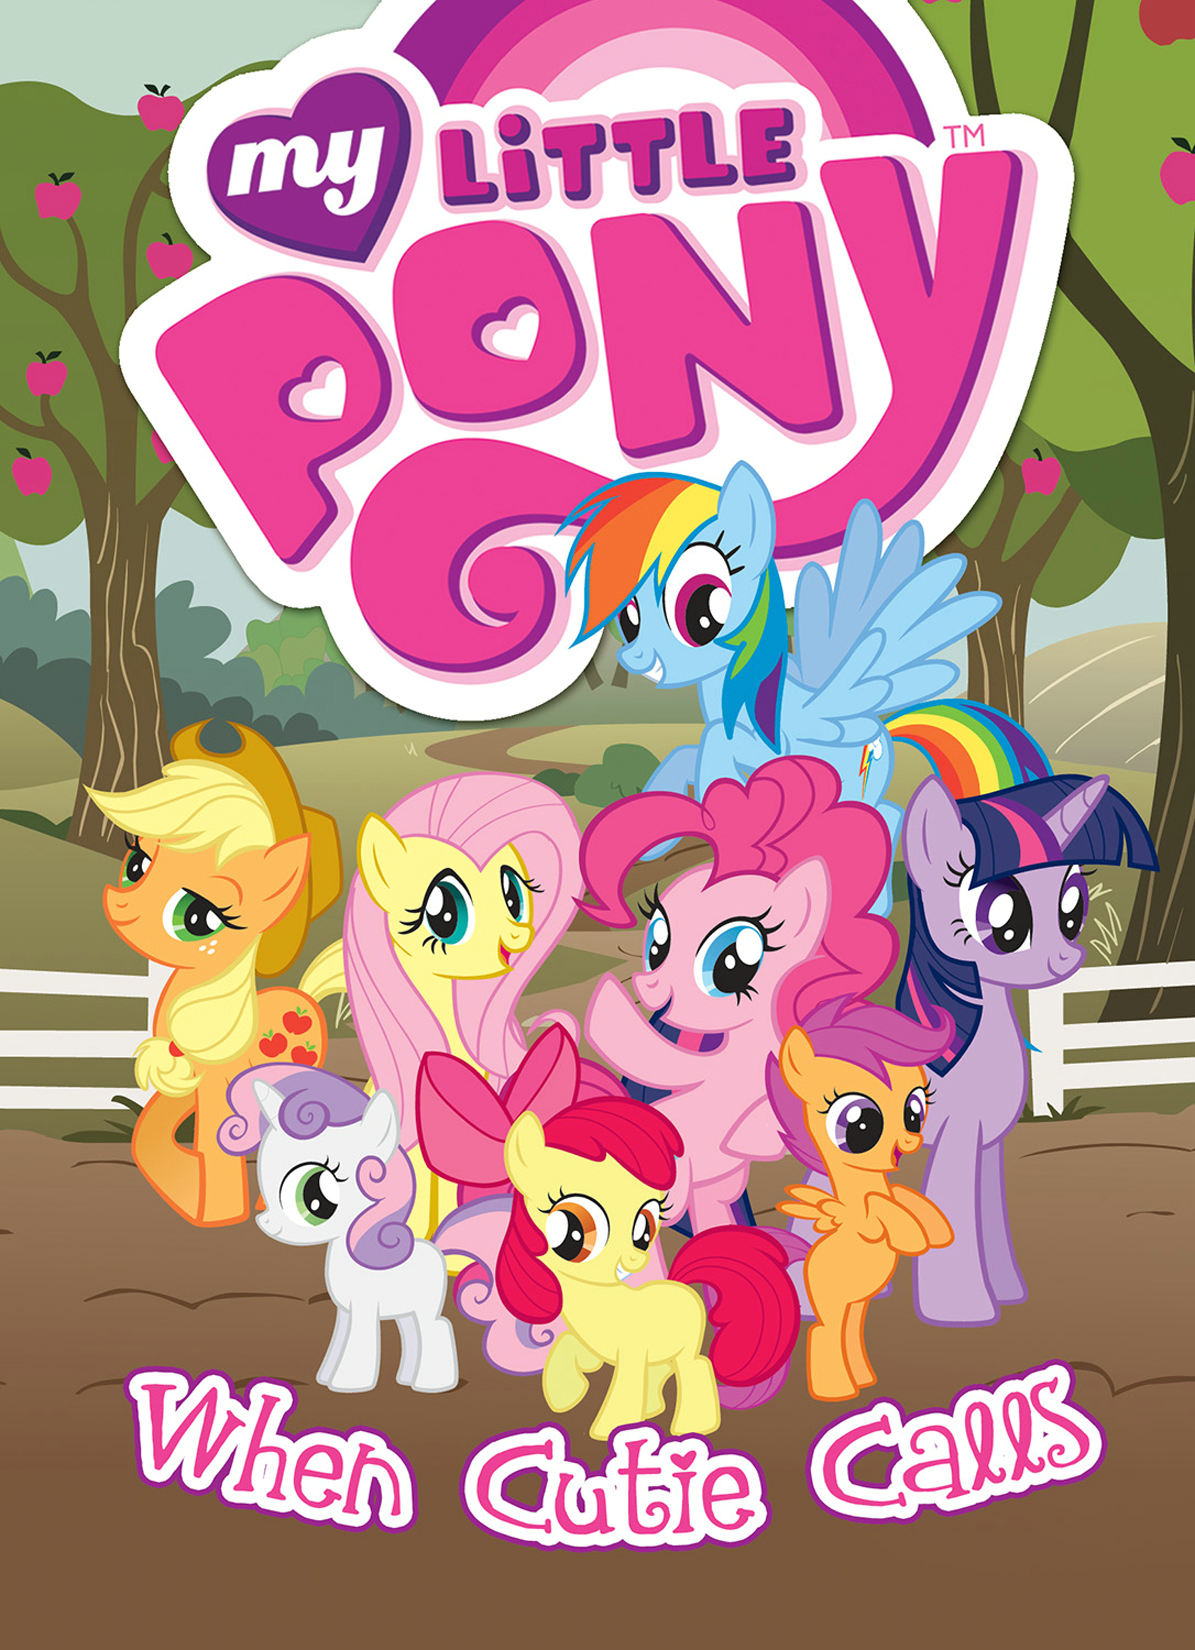 MY LITTLE PONY TP VOL 02 WHEN CUTIE CALLS